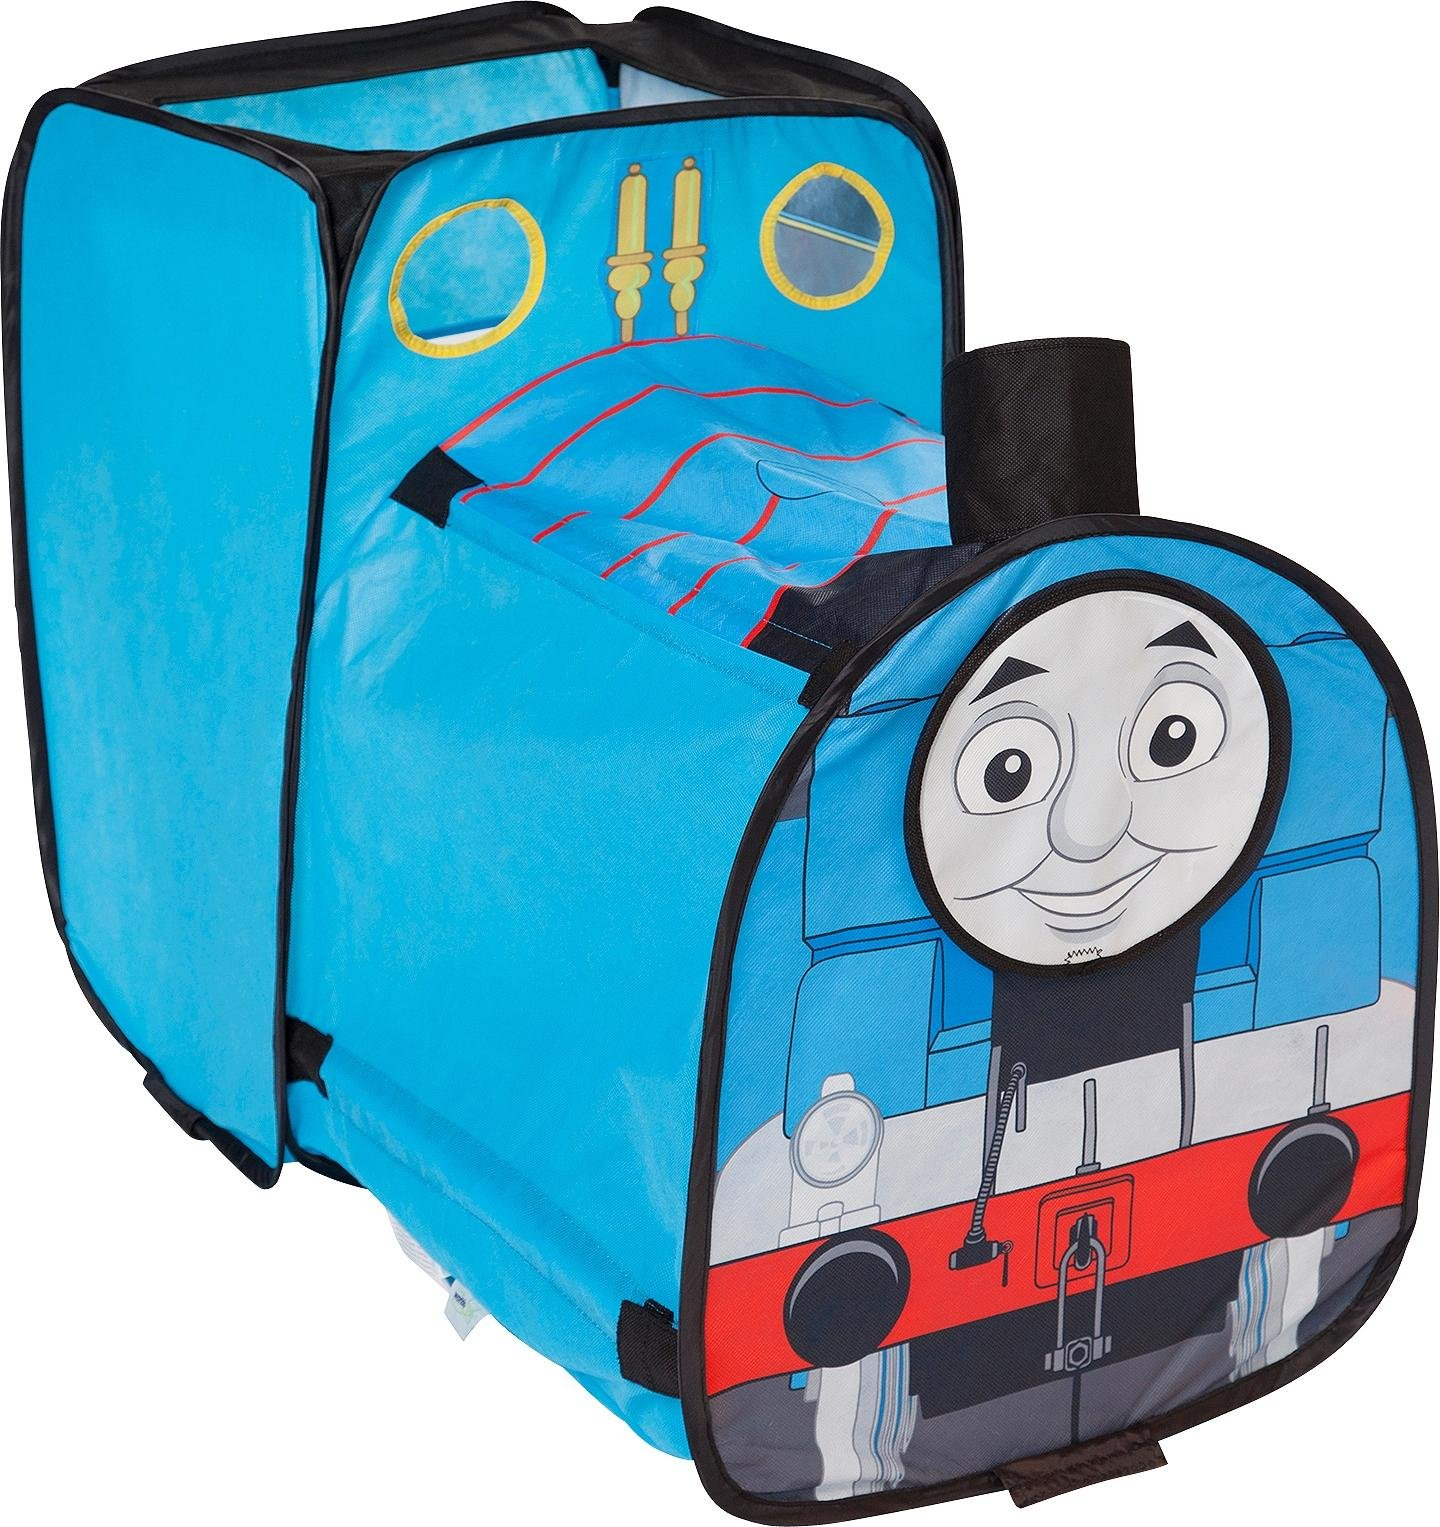 Pop Up Thomas u0026 Friends Train Play Tent Fun Never Stops With This Thomas  sc 1 st  eBay & Pop Up Thomas u0026 Friends Train Play Tent Fun Never Stops With This ...